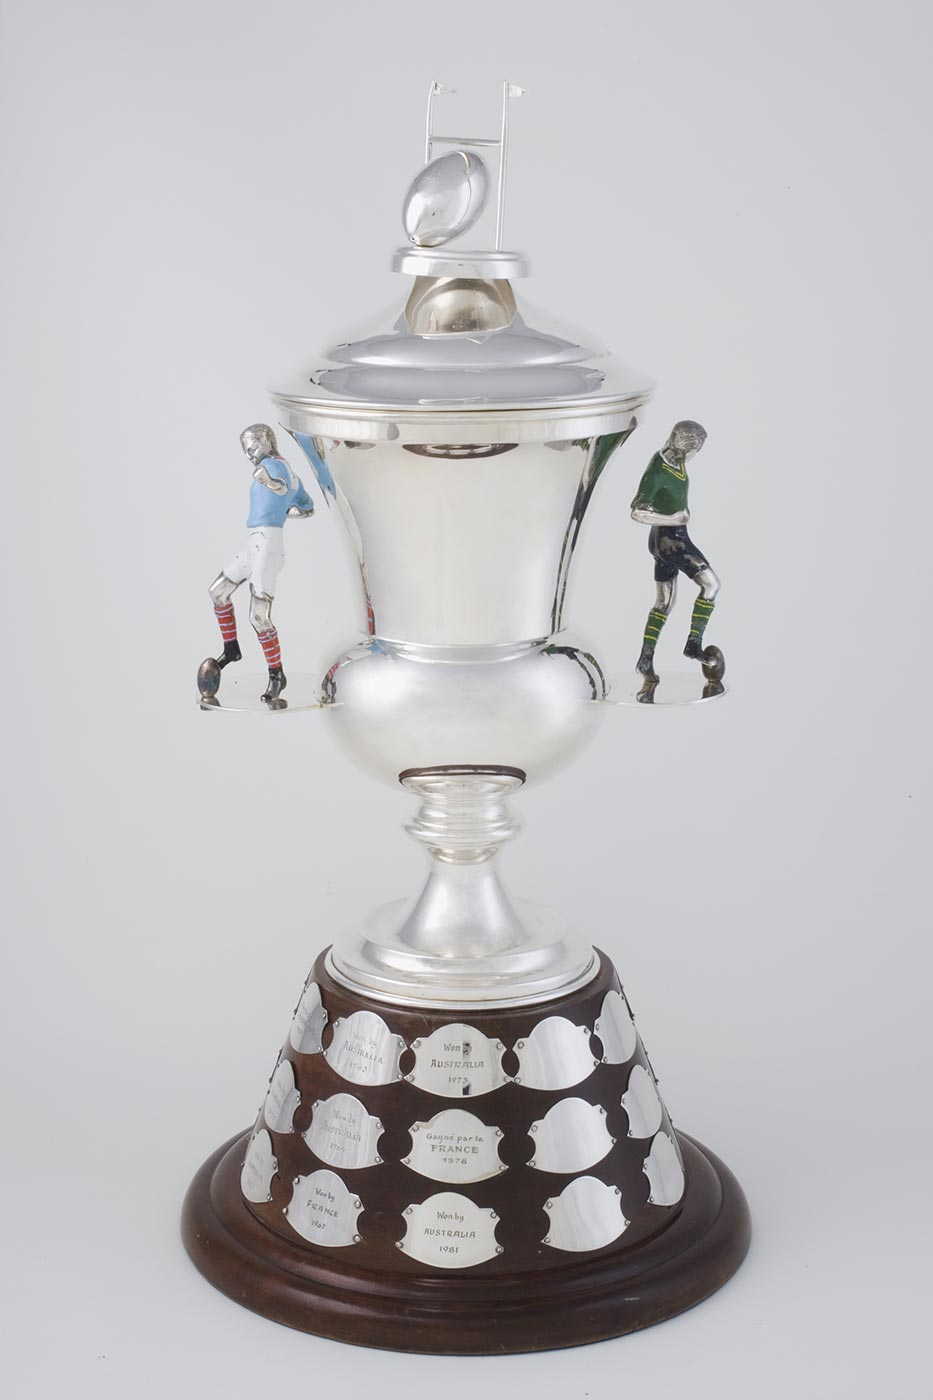 Silver international rugby league trophy with two handles in the form of football players. - click to view larger image